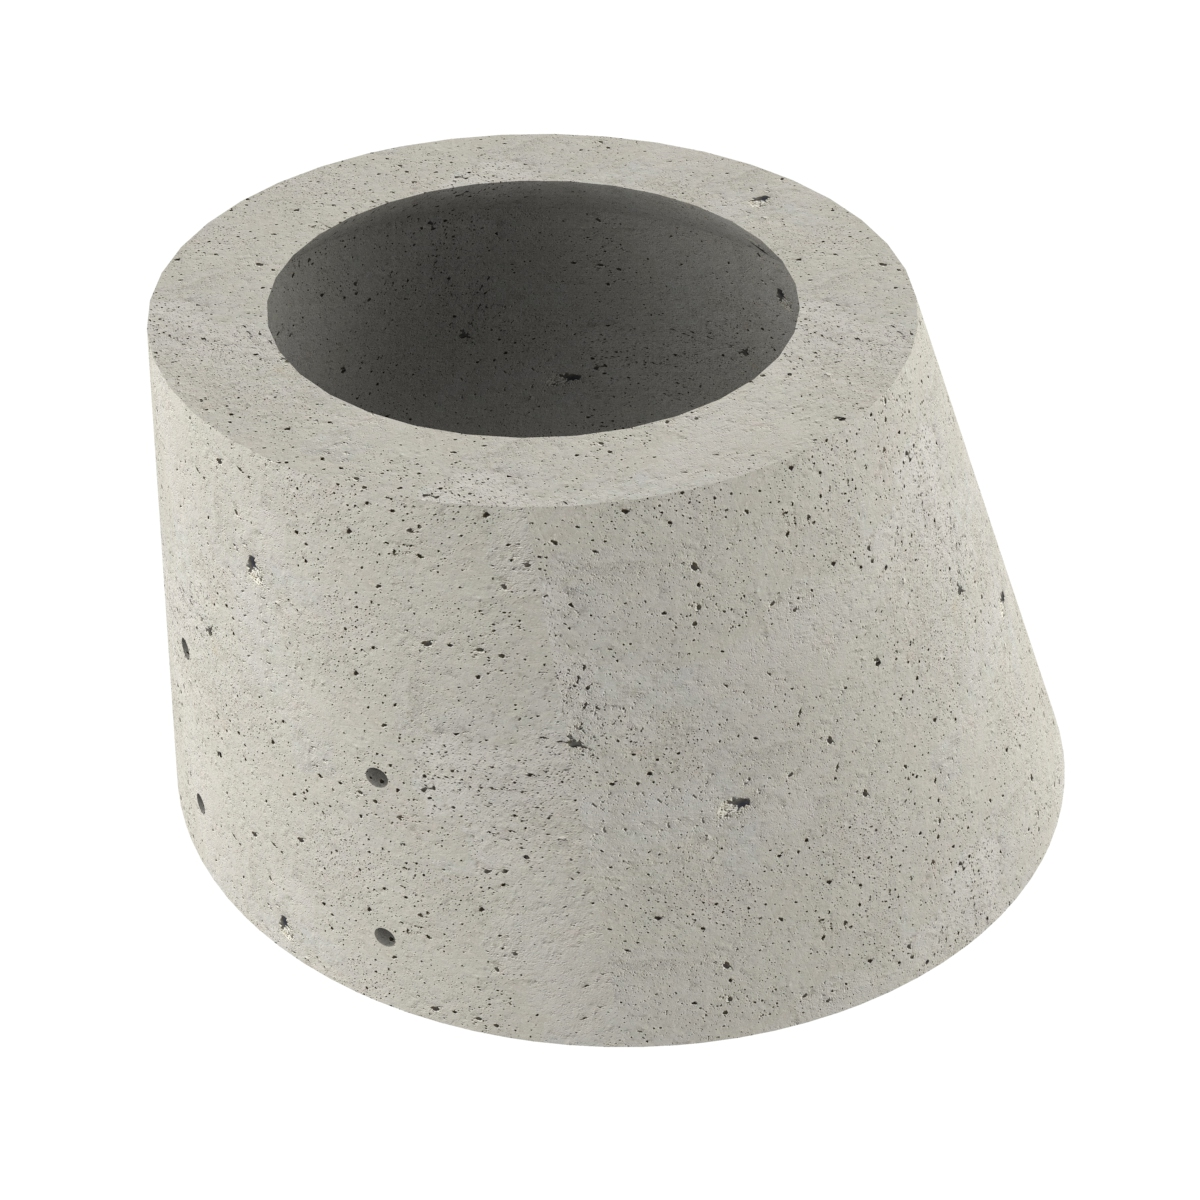 Concrete asimetric cone for wells P-8 60x100x65